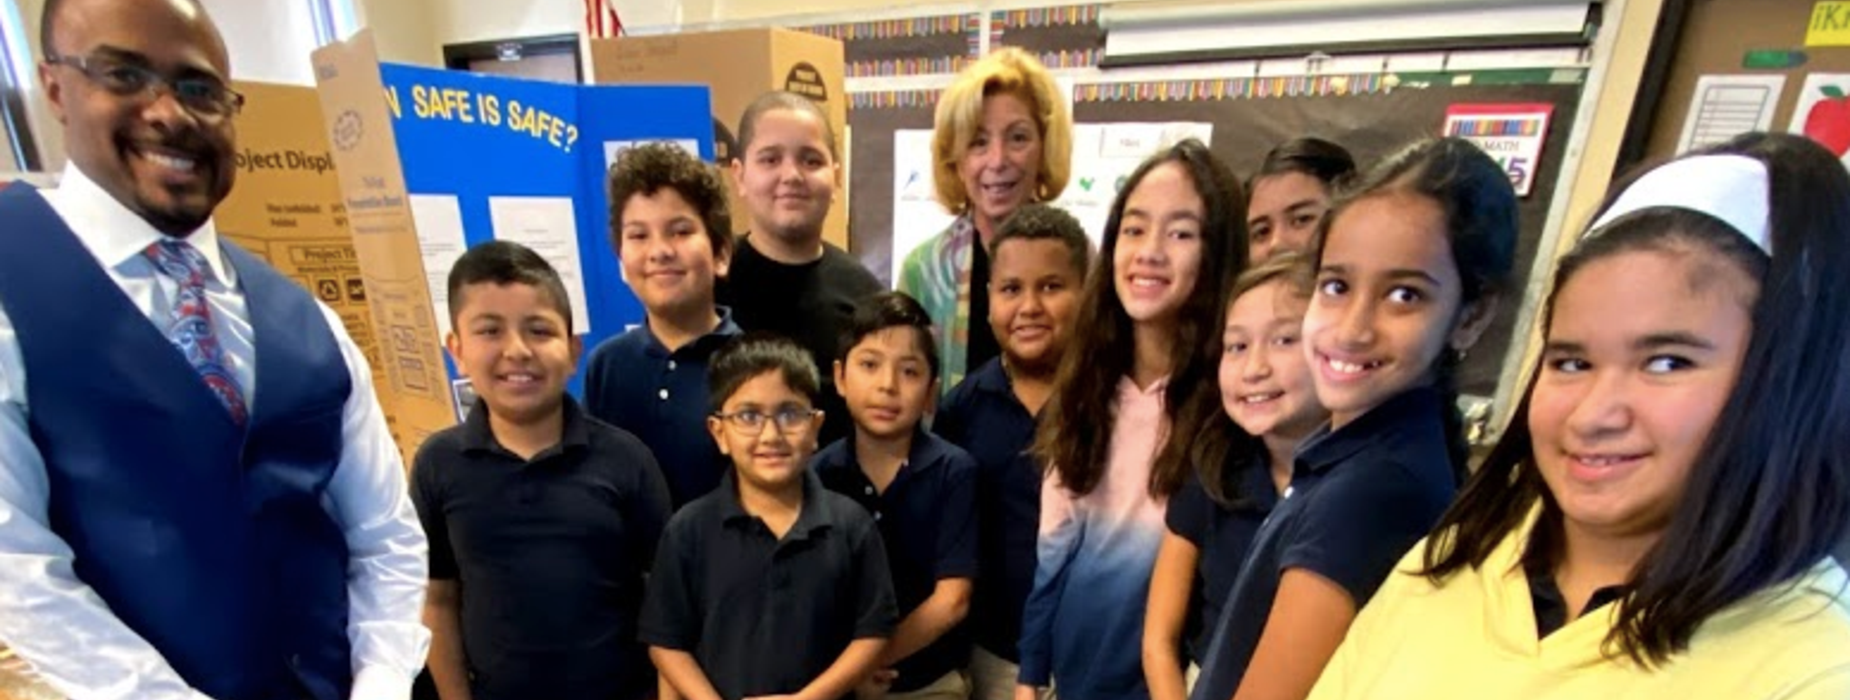 2019 Charles E. Trefurt Elementary School Science Fair Participants stand with projects accompanied by Principal Maris Migliozzi and Vice Principal Darrell Carson